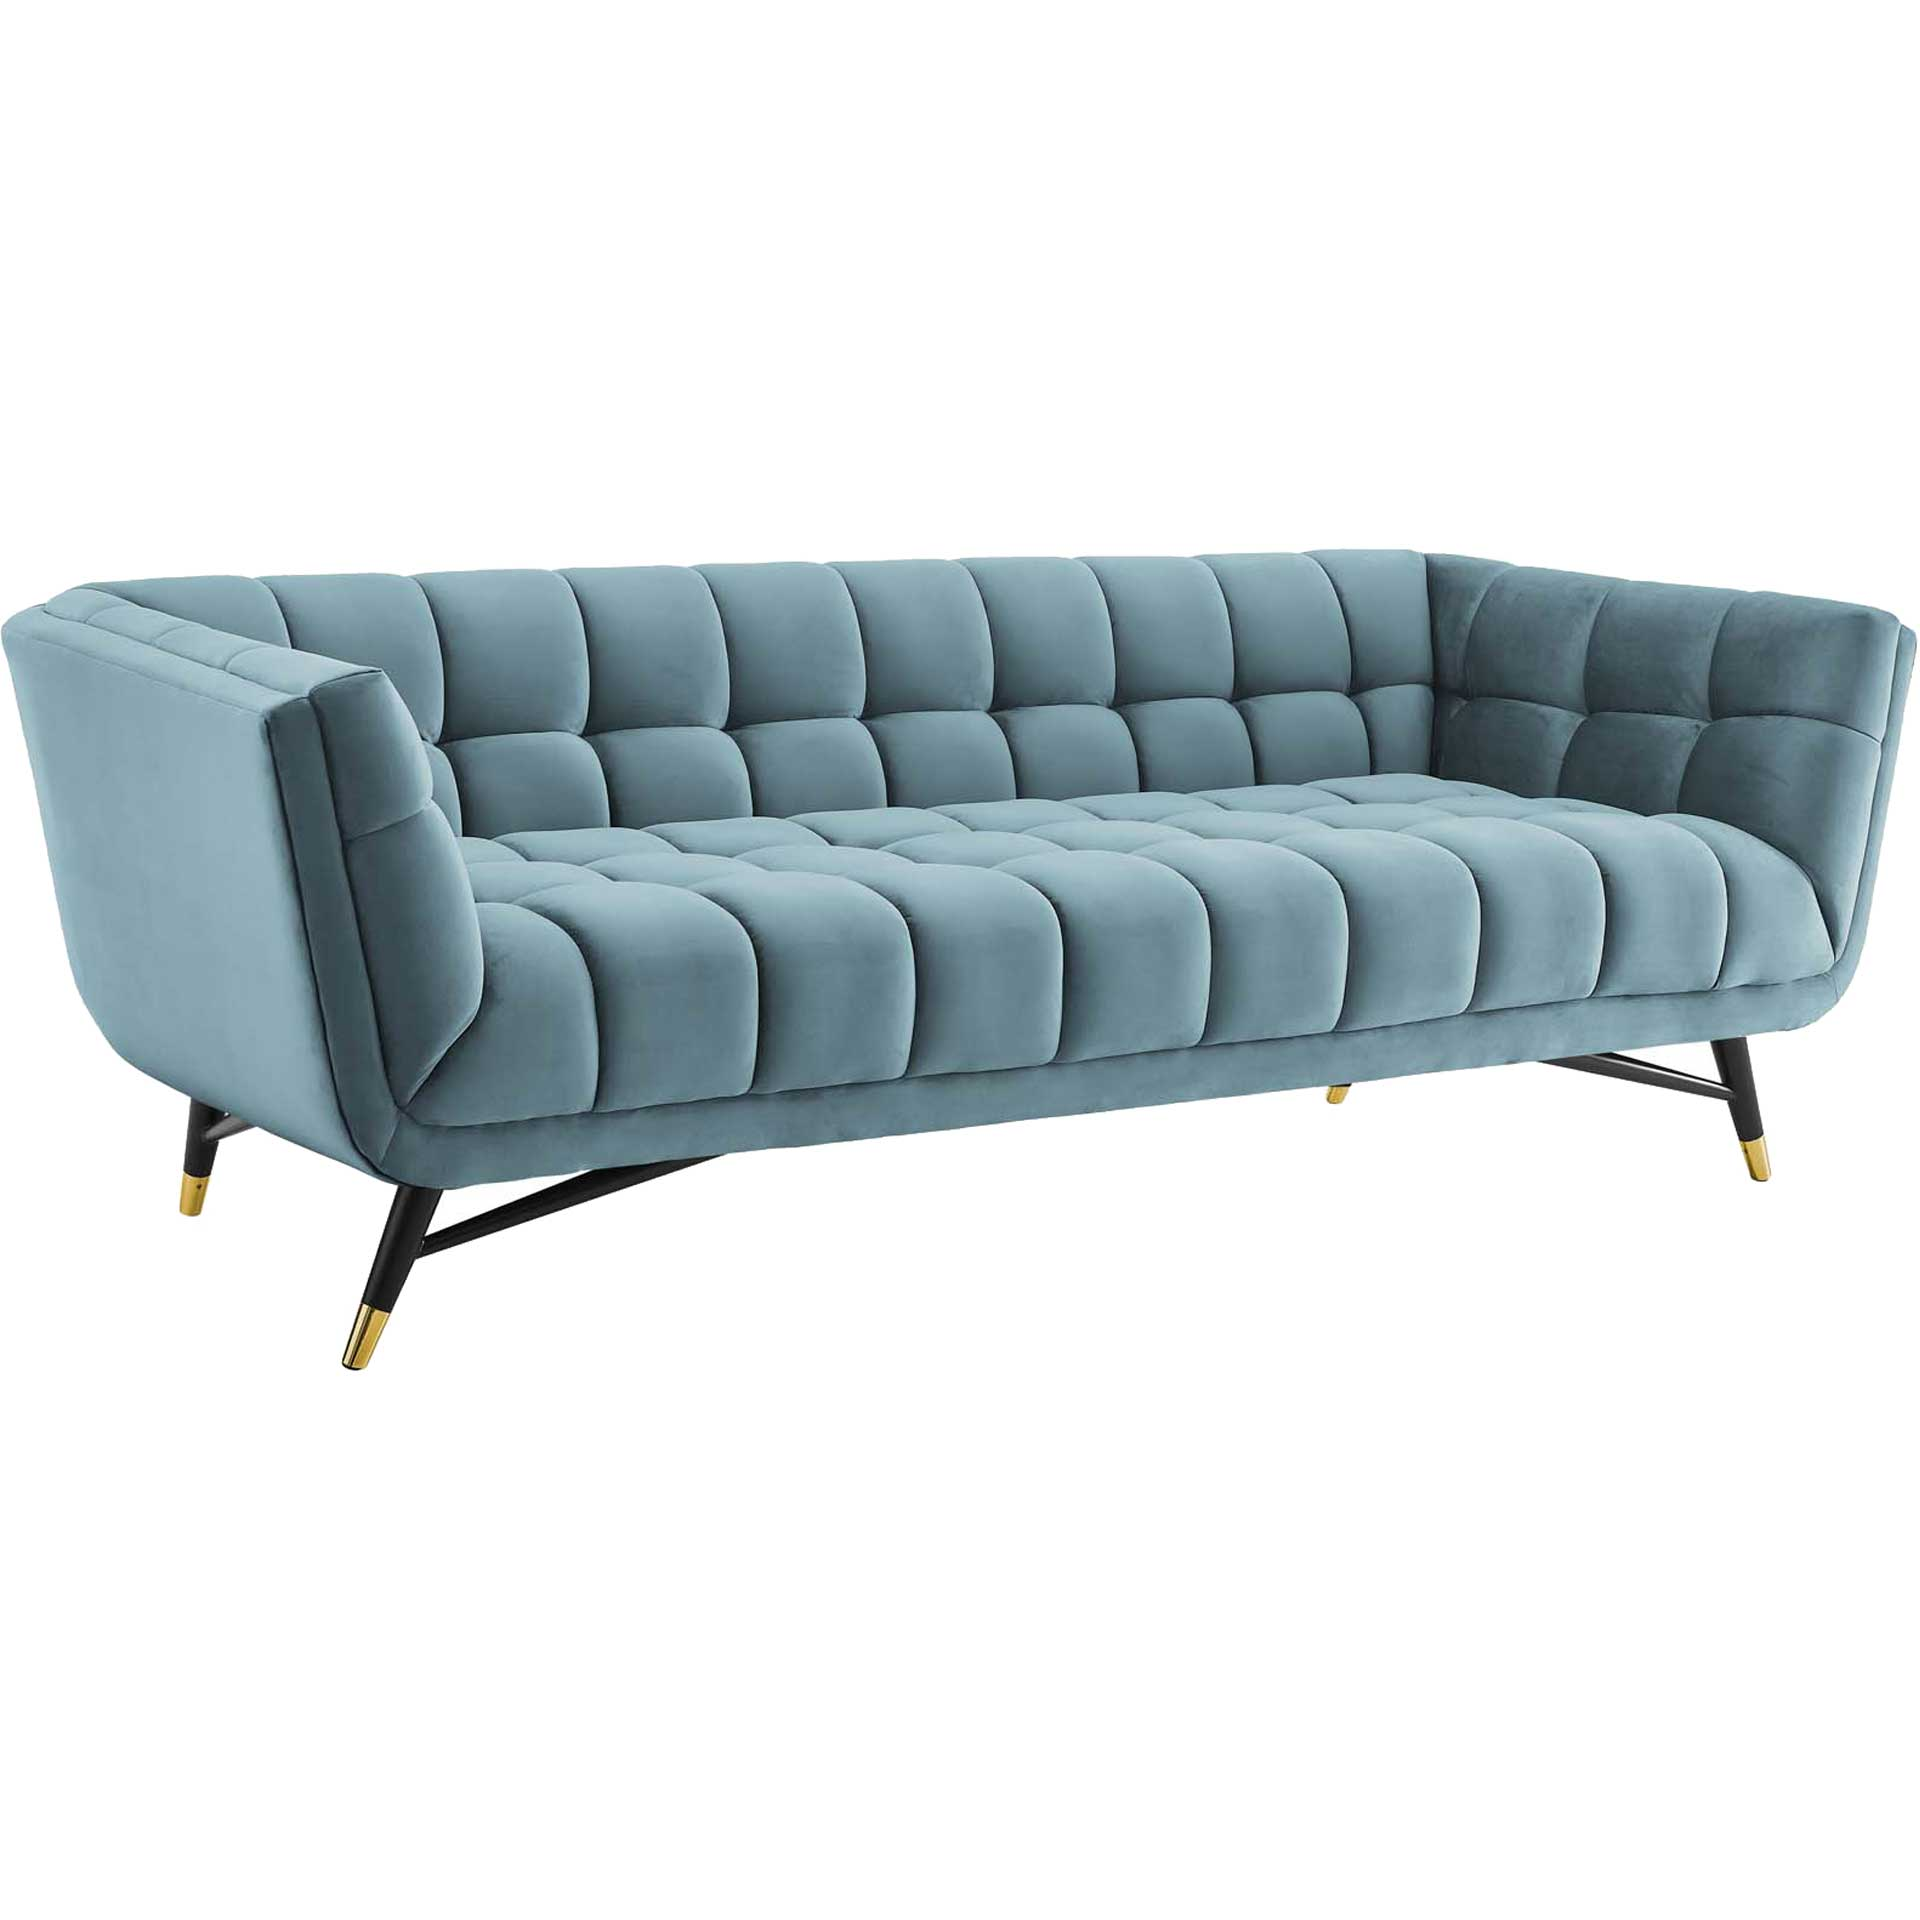 Adrianna Upholstered Velvet Sofa Sea Blue